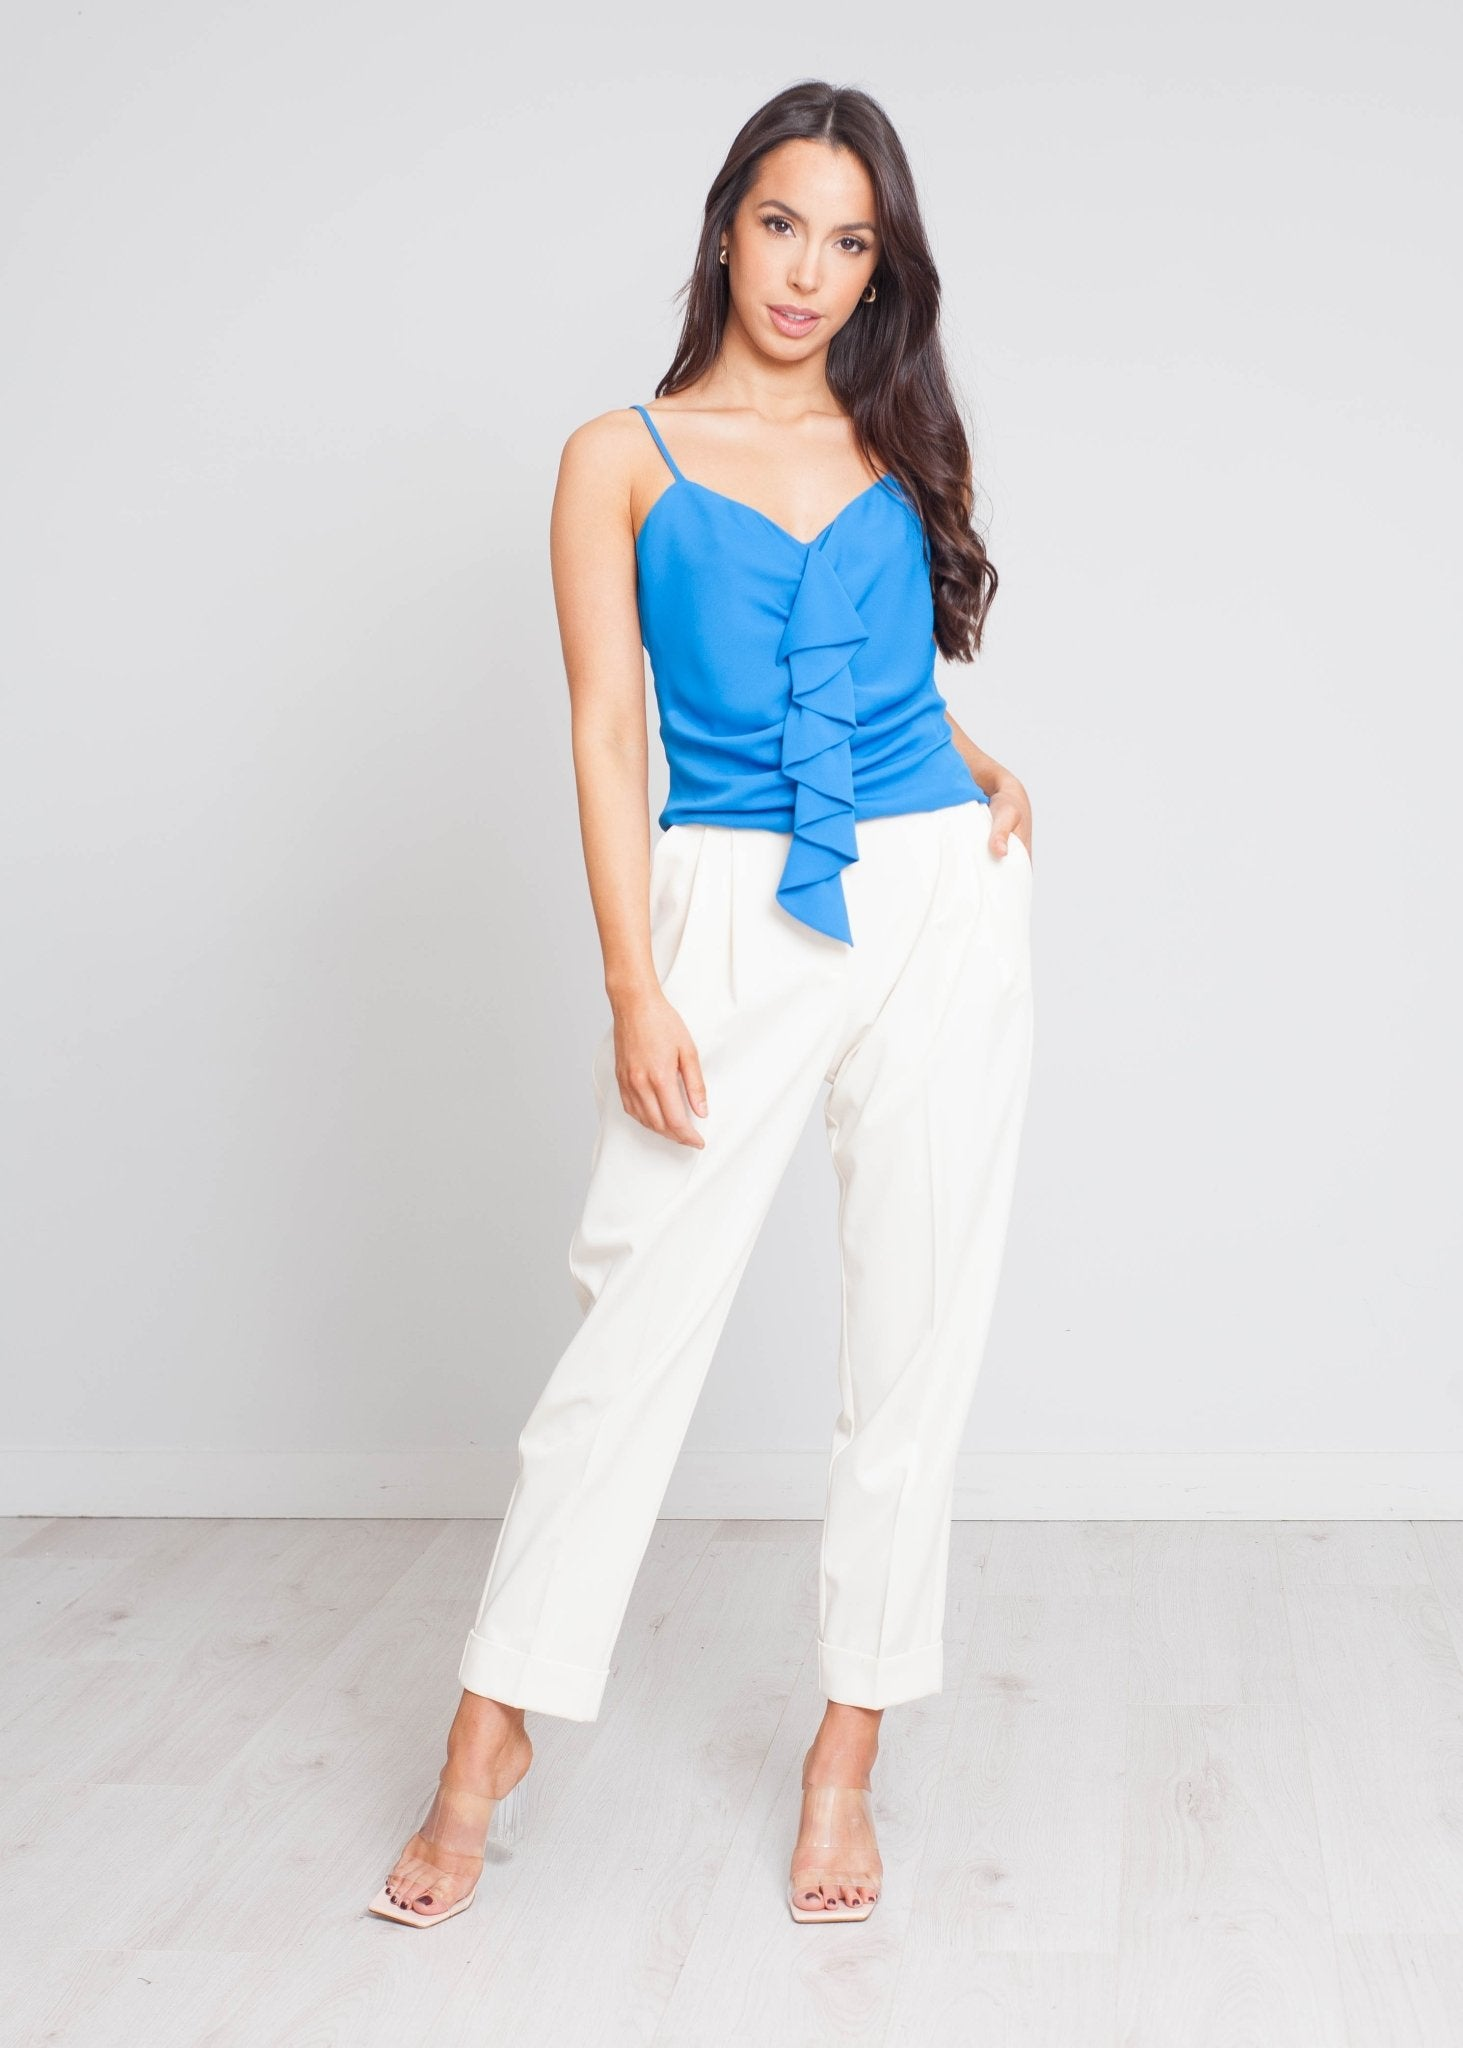 Eva Top In Royal Blue - The Walk in Wardrobe